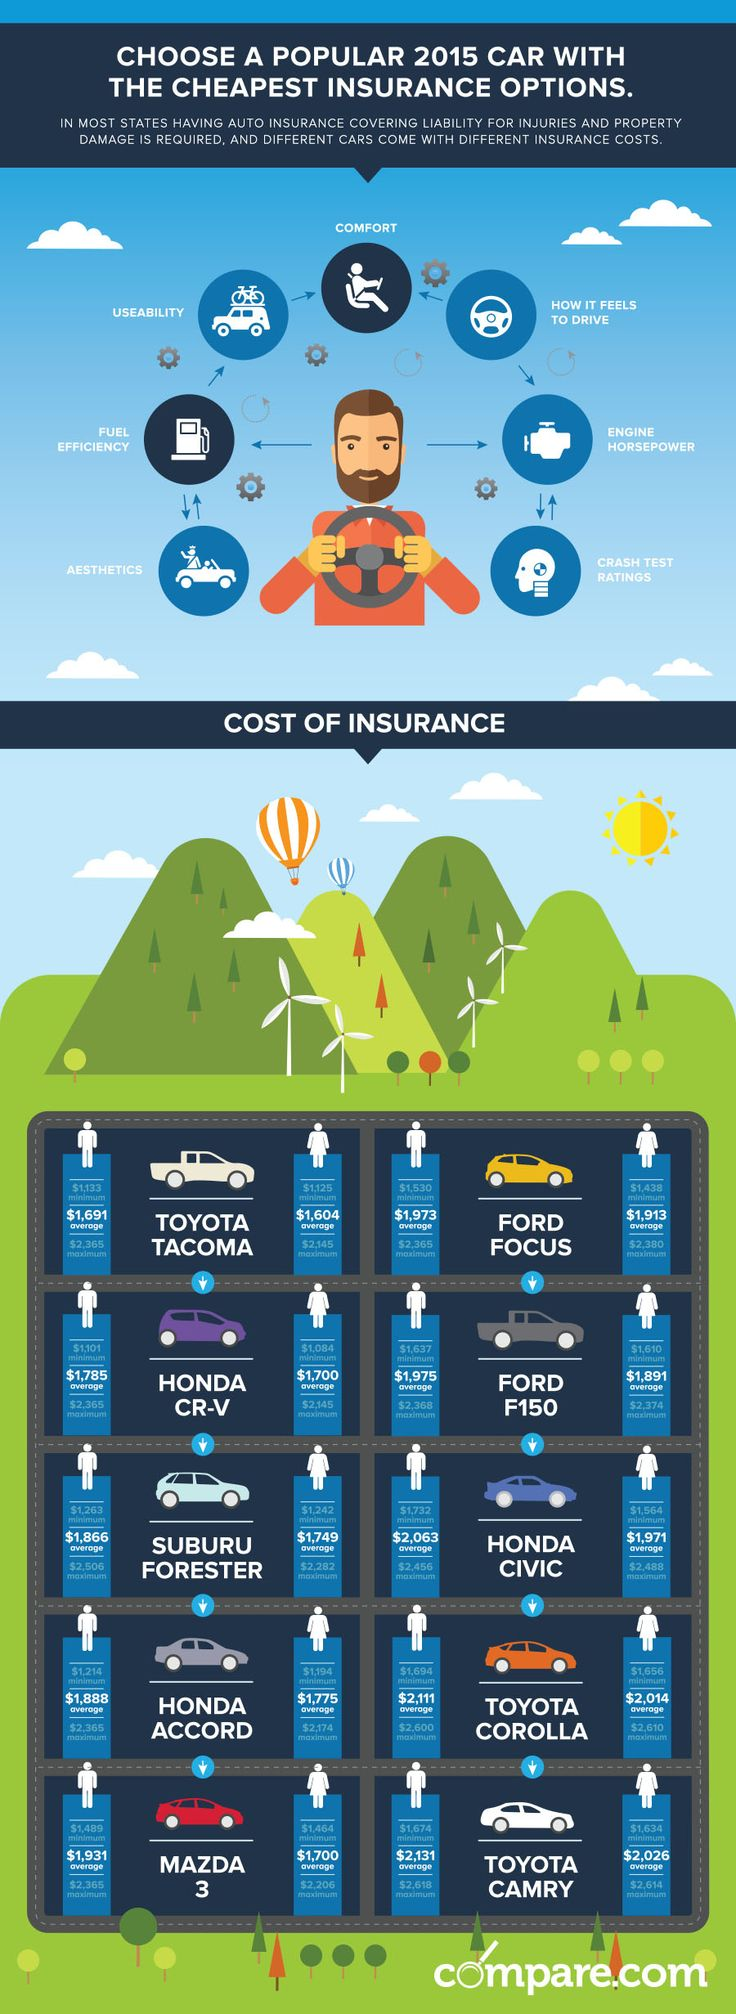 Choose a Popular 2015 Car with the Cheapest Insurance Options [#INFOGRAPHIC]